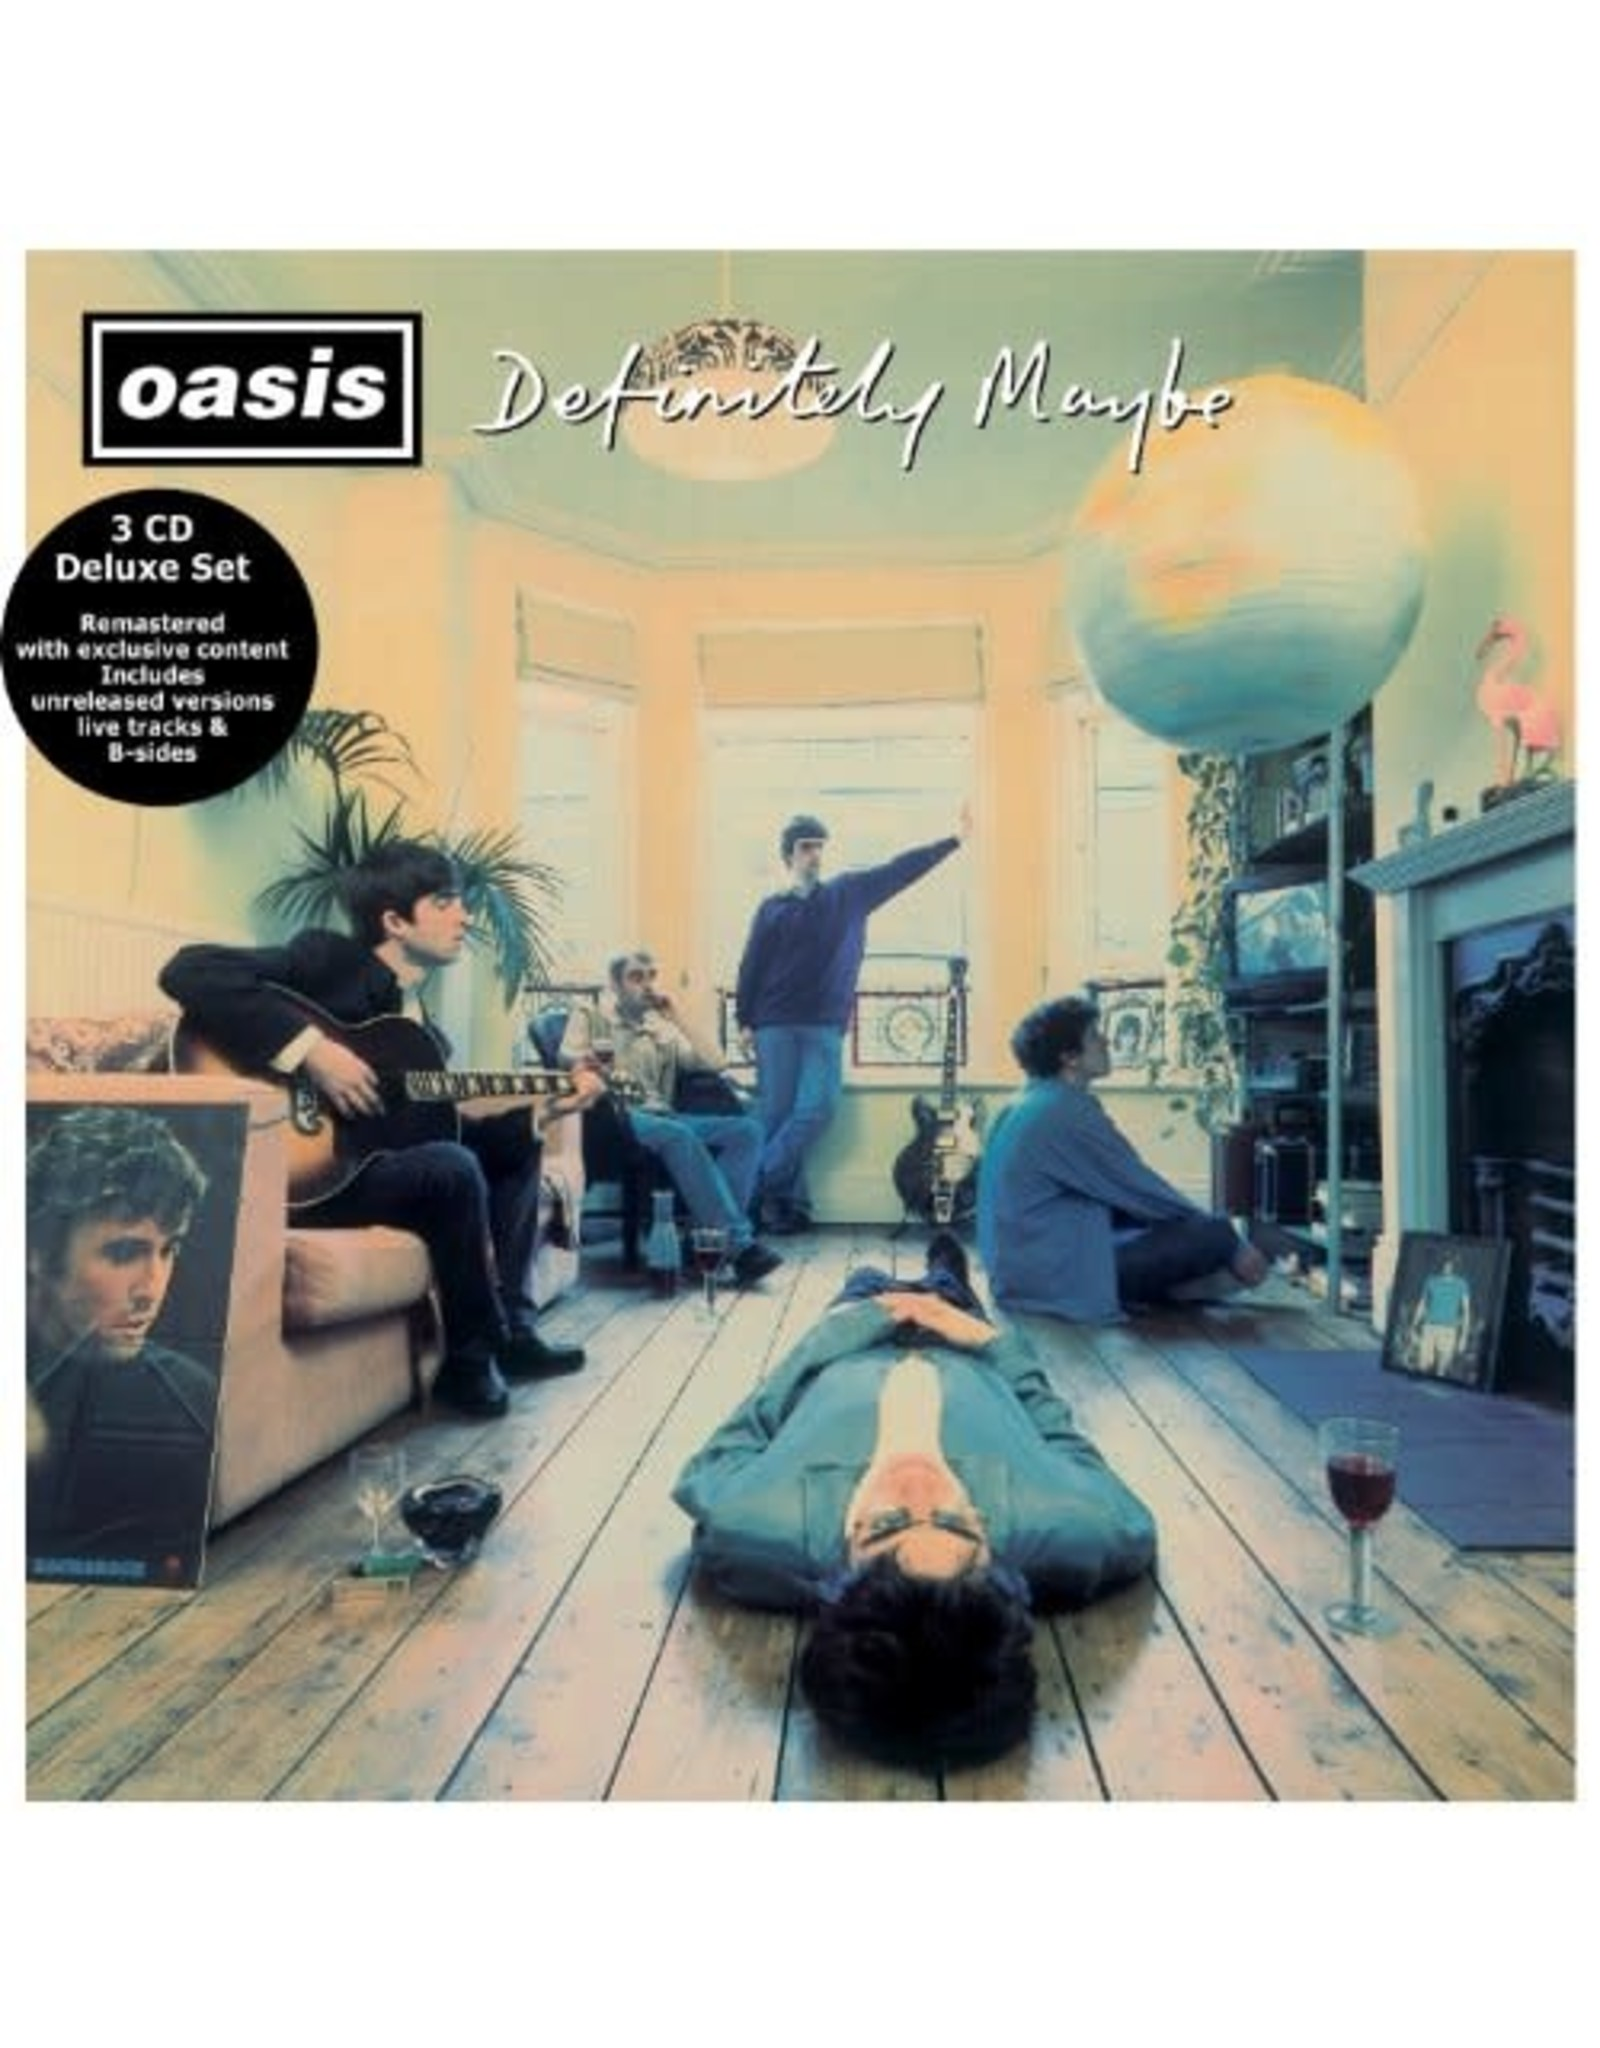 Oasis - Definitely Maybe 3CD Deluxe